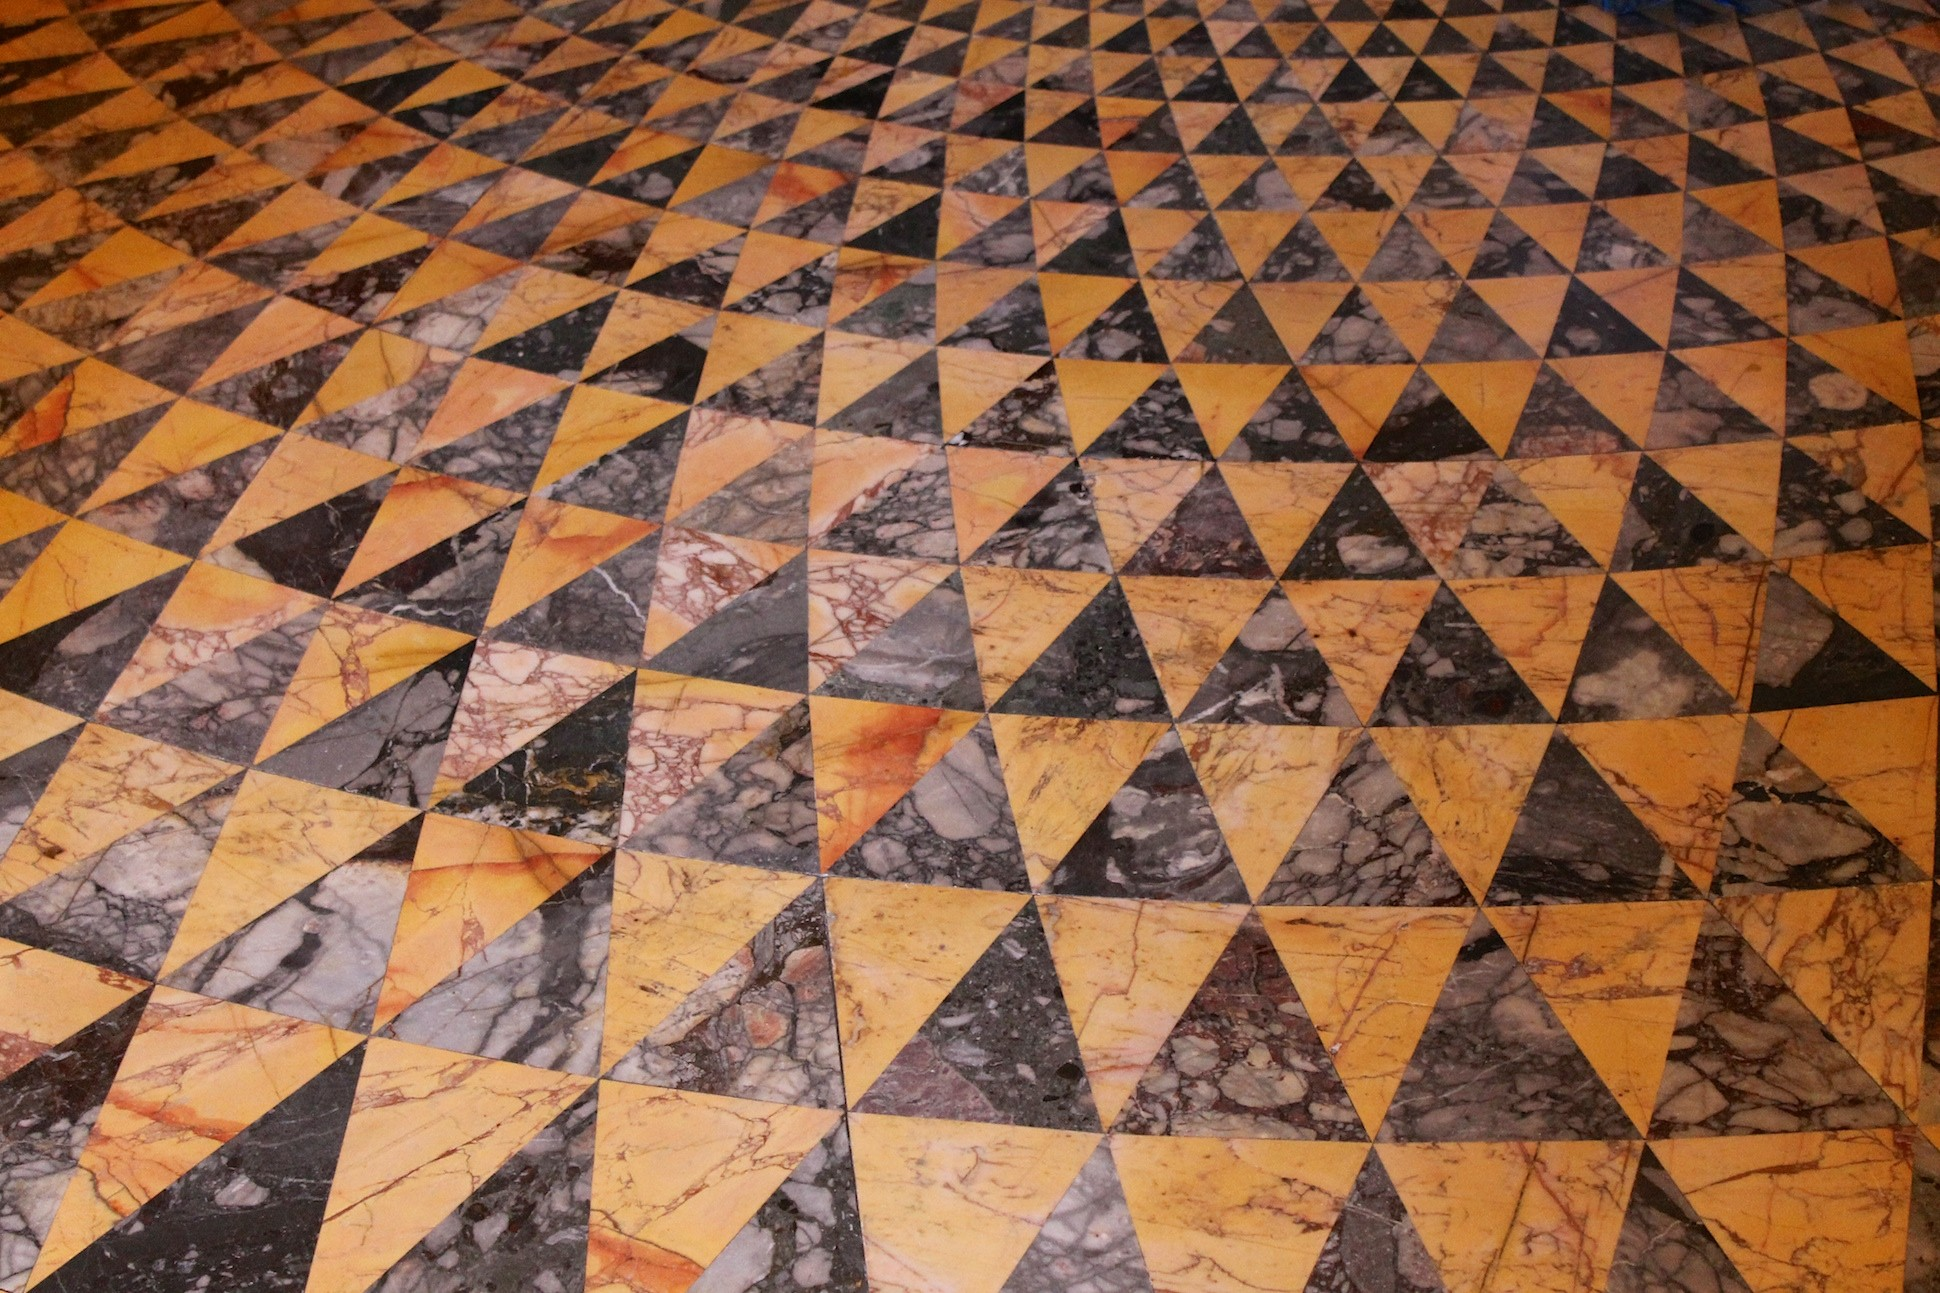 Image of triangle pattern engraved on a marble floor